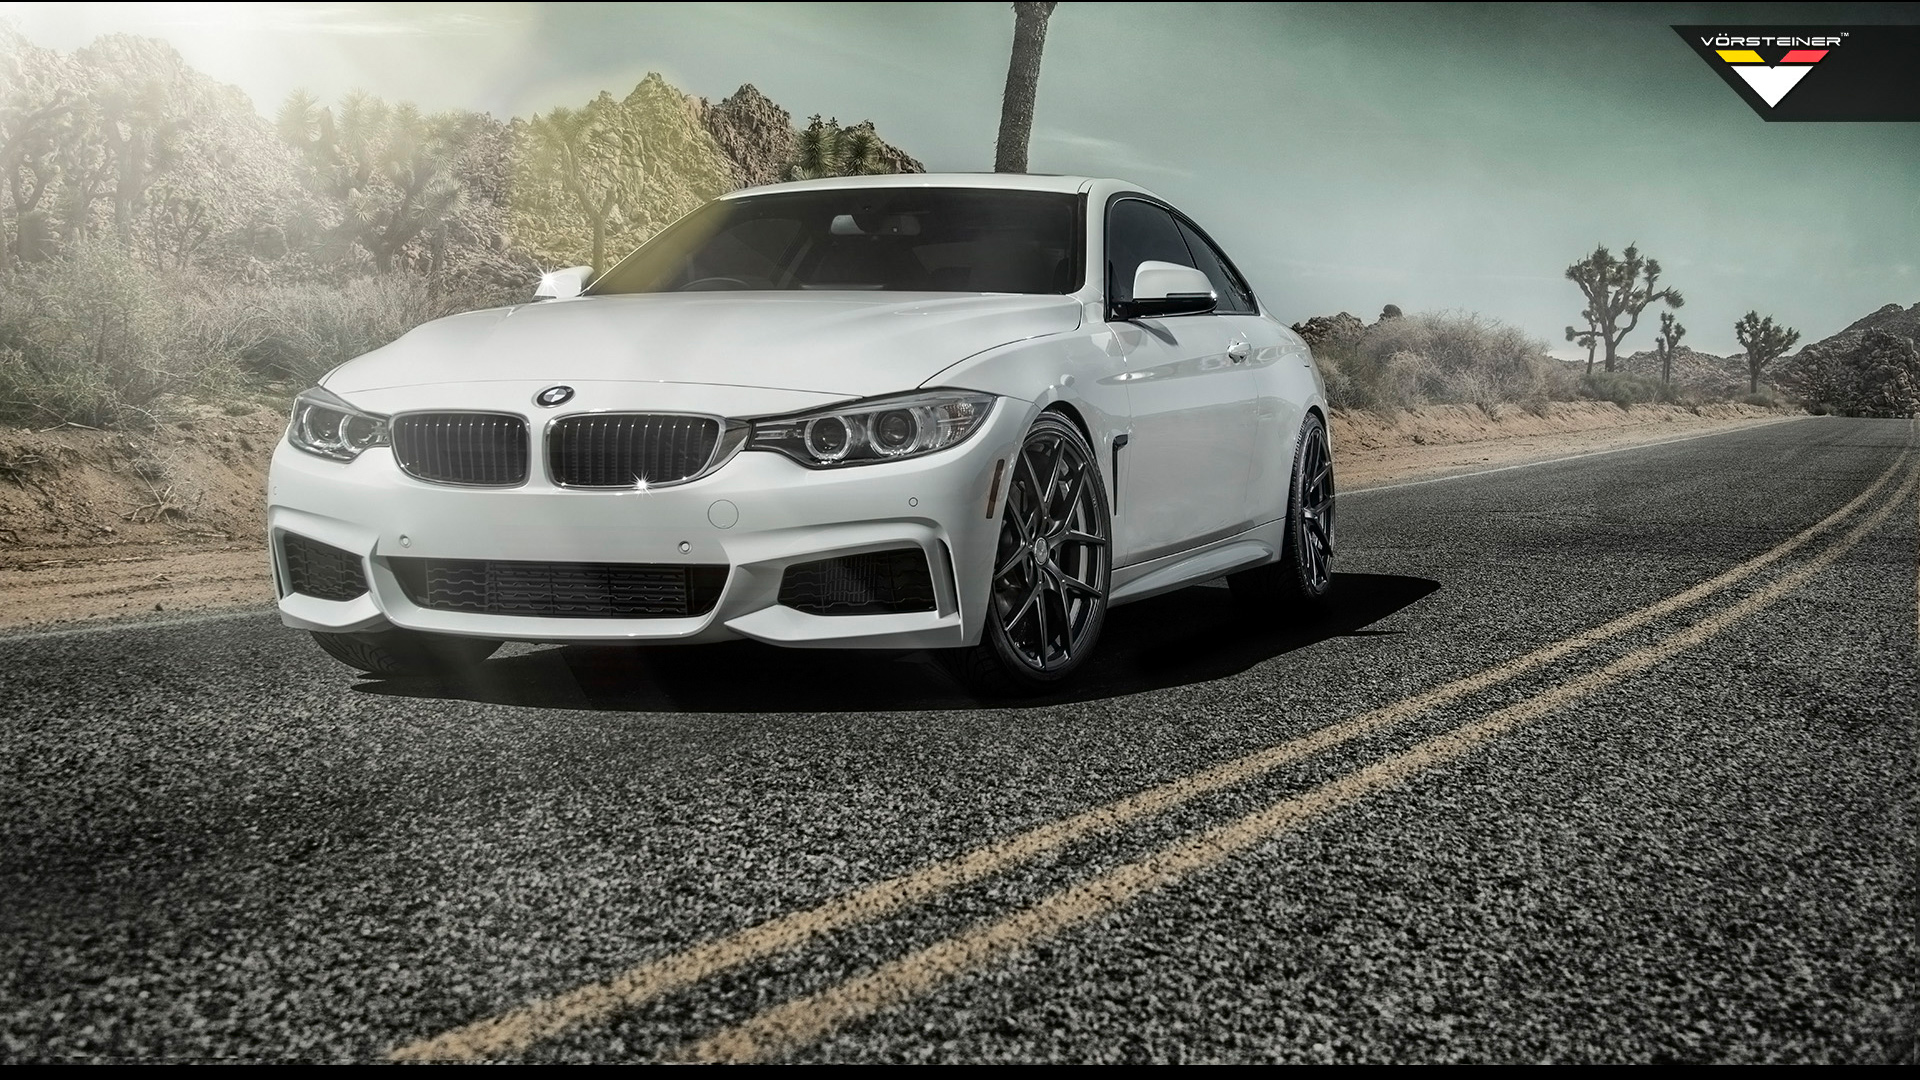 2014 Vorsteiner BMW 435i Wallpaper | HD Car Wallpapers ...